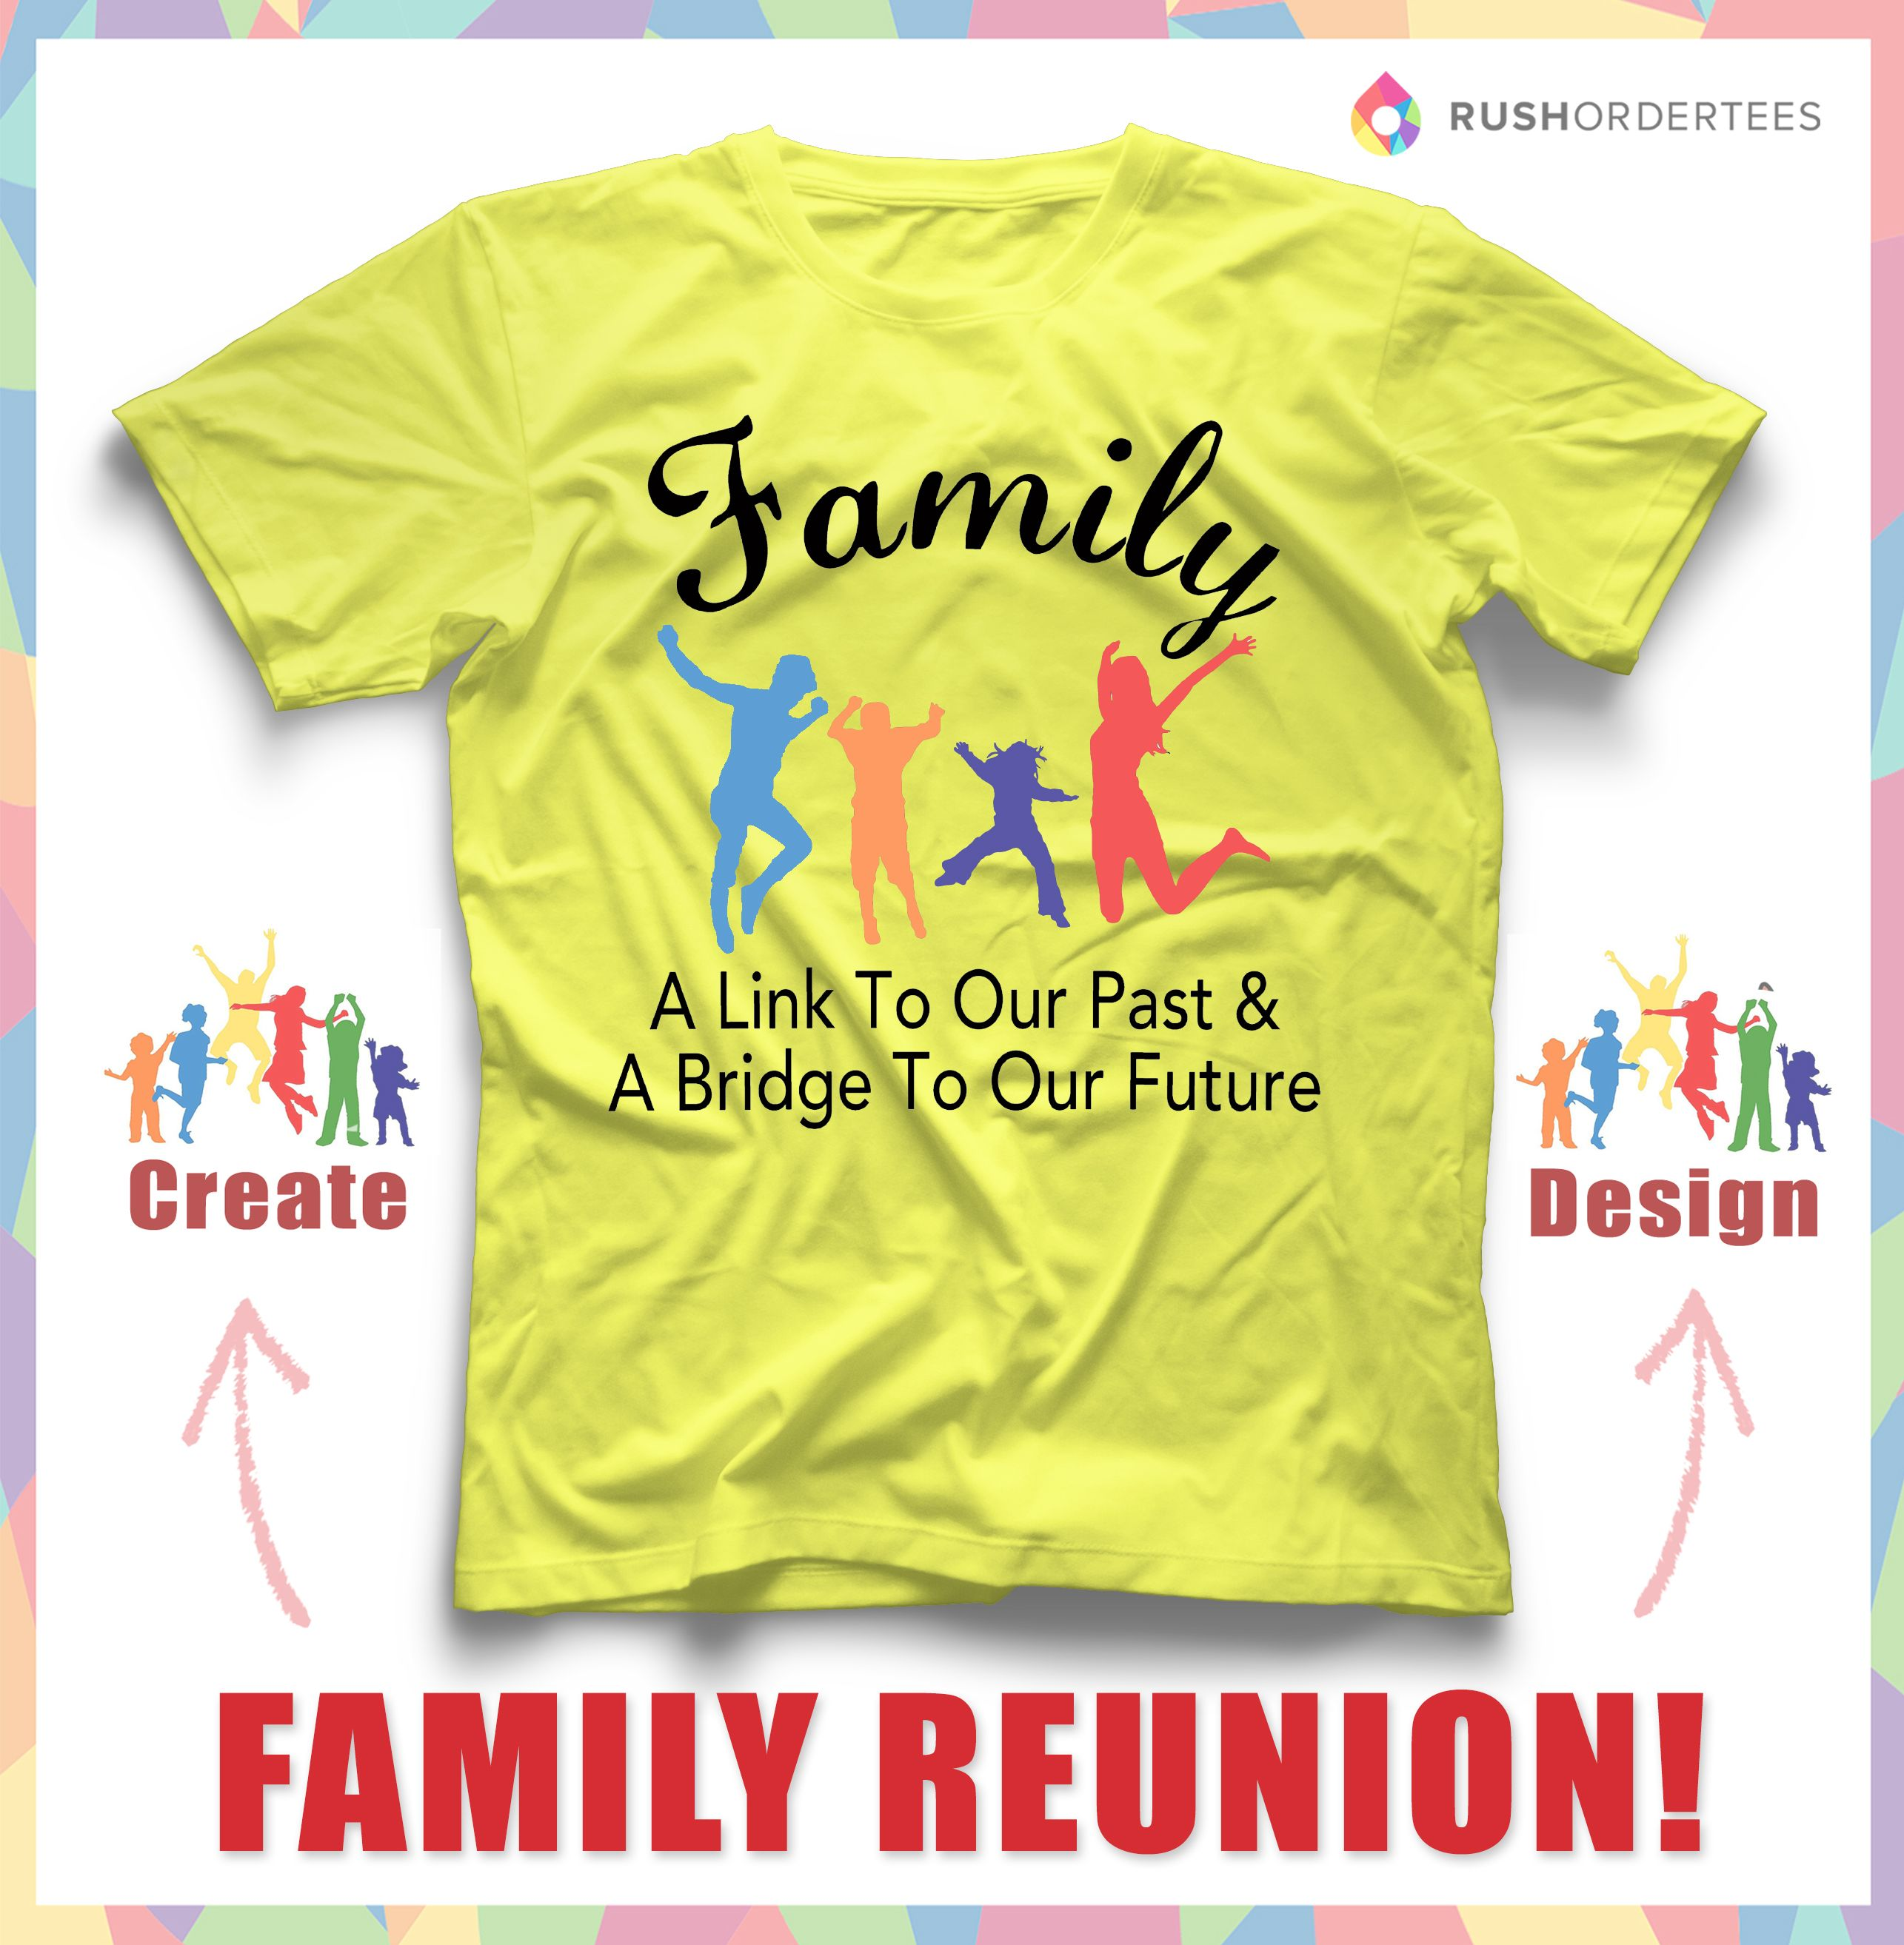 Family Reunion Shirt Design Ideas family reunion t shirts custom shirts fast shipping stl shirt co Family Reunion Custom T Shirt Design Idea Create An Awesome Custom Design For Your